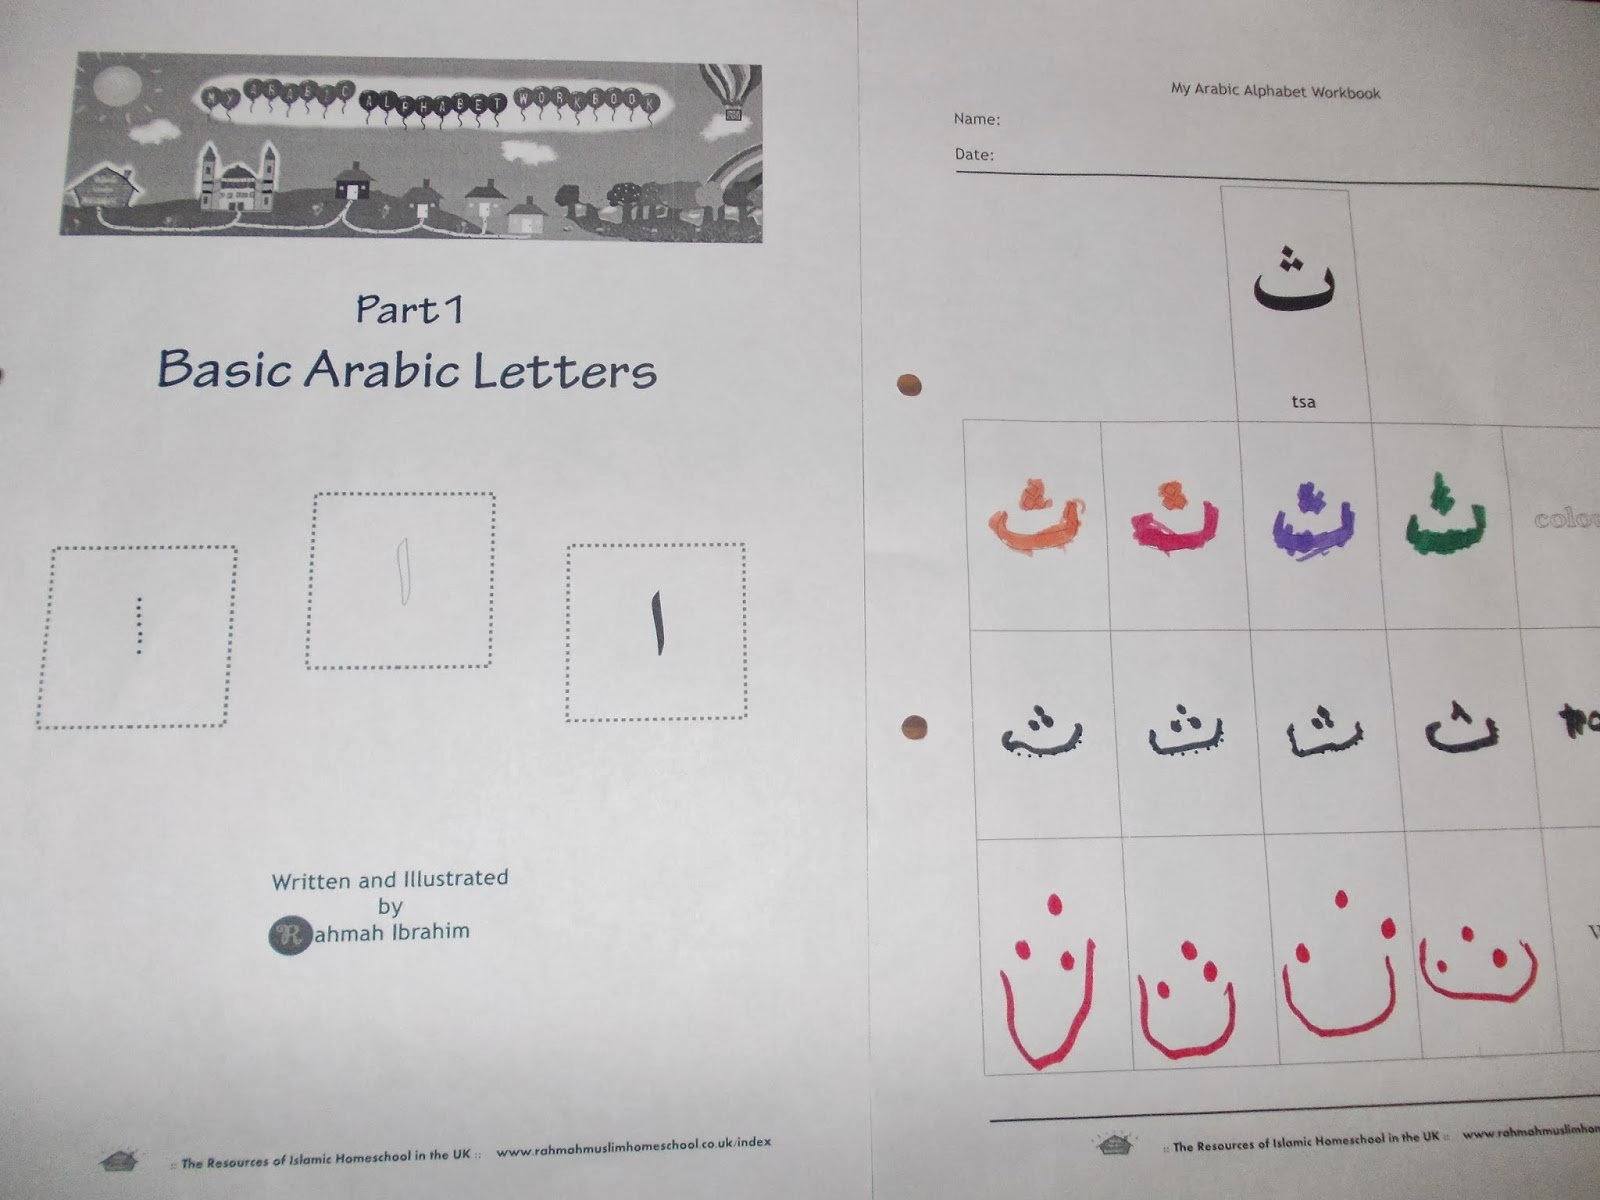 Arabic Alphabet Workbook